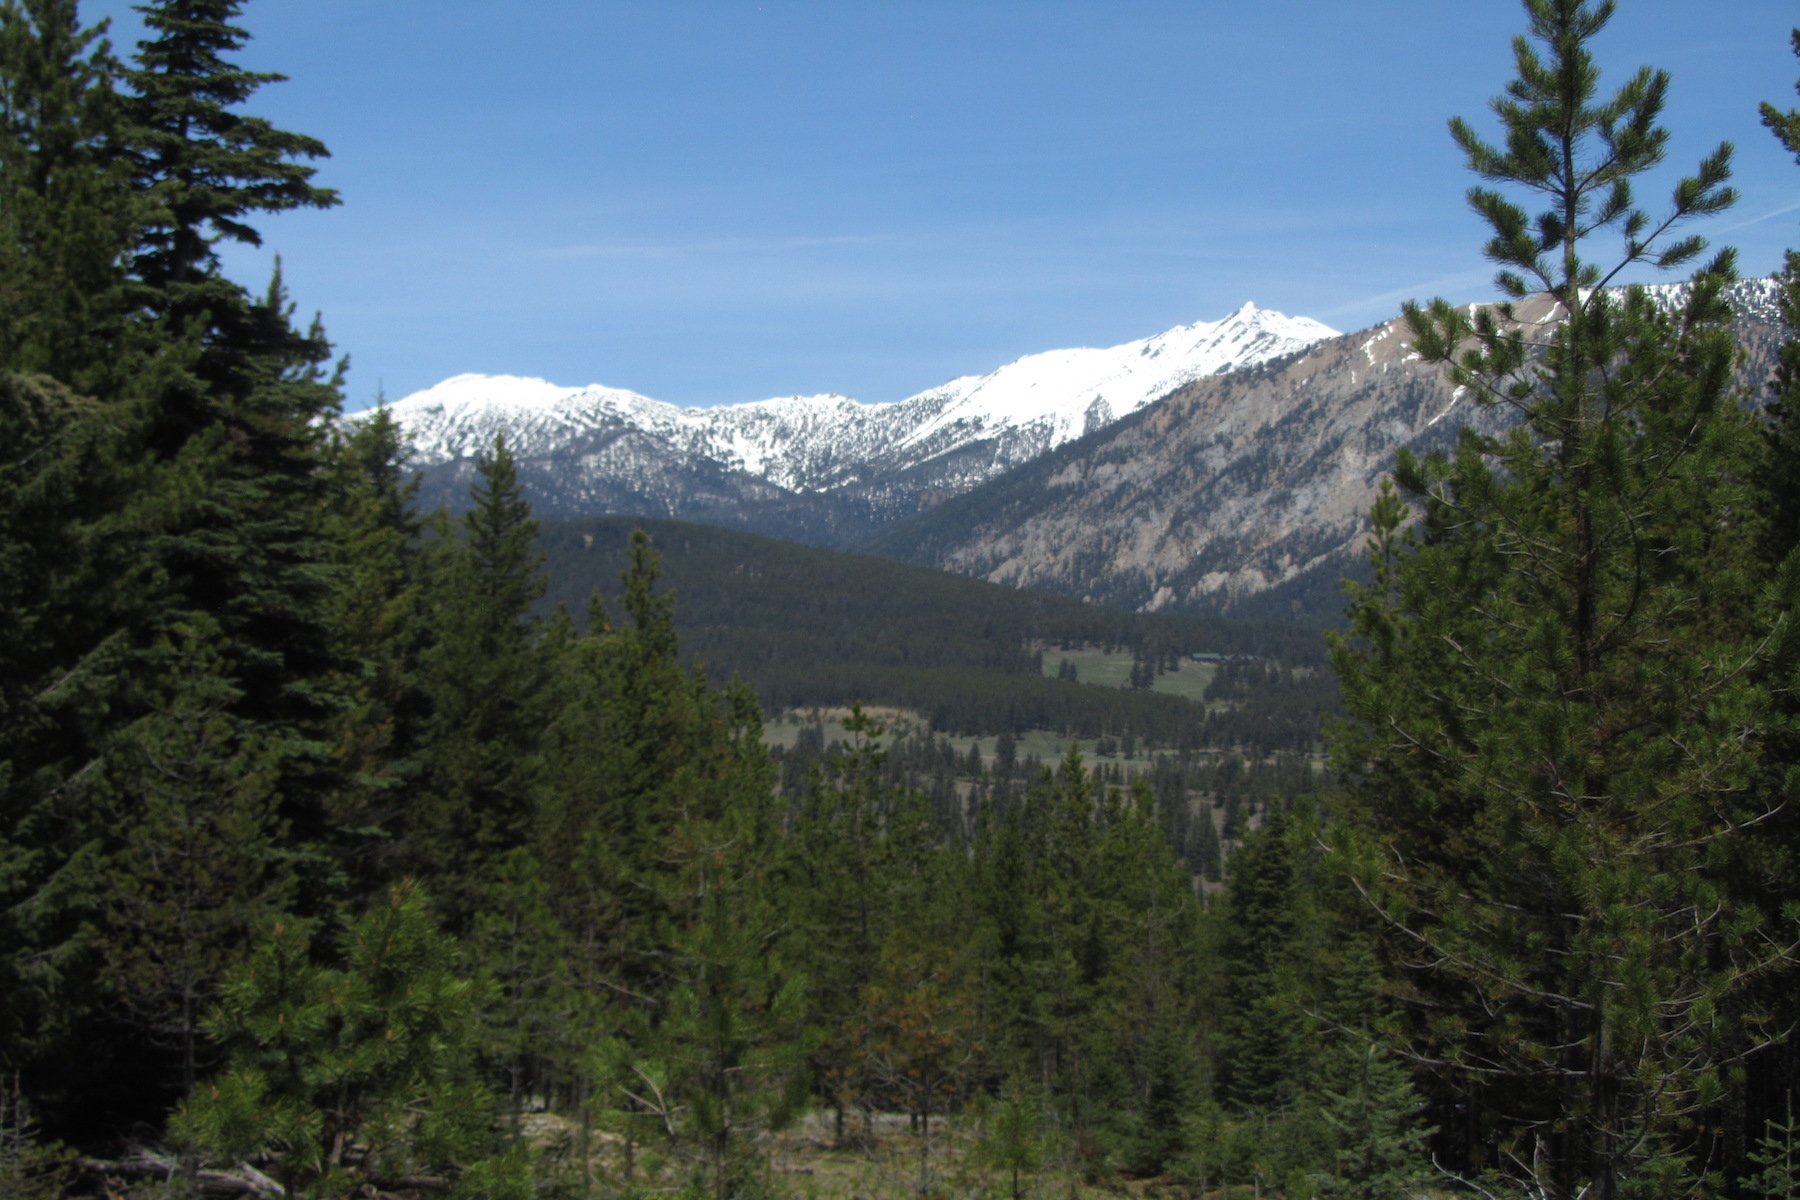 Terreno por un Venta en Spanish Peaks North Lot 66 Silverado Trail, Lot 66 Big Sky, Montana, 59716 Estados Unidos